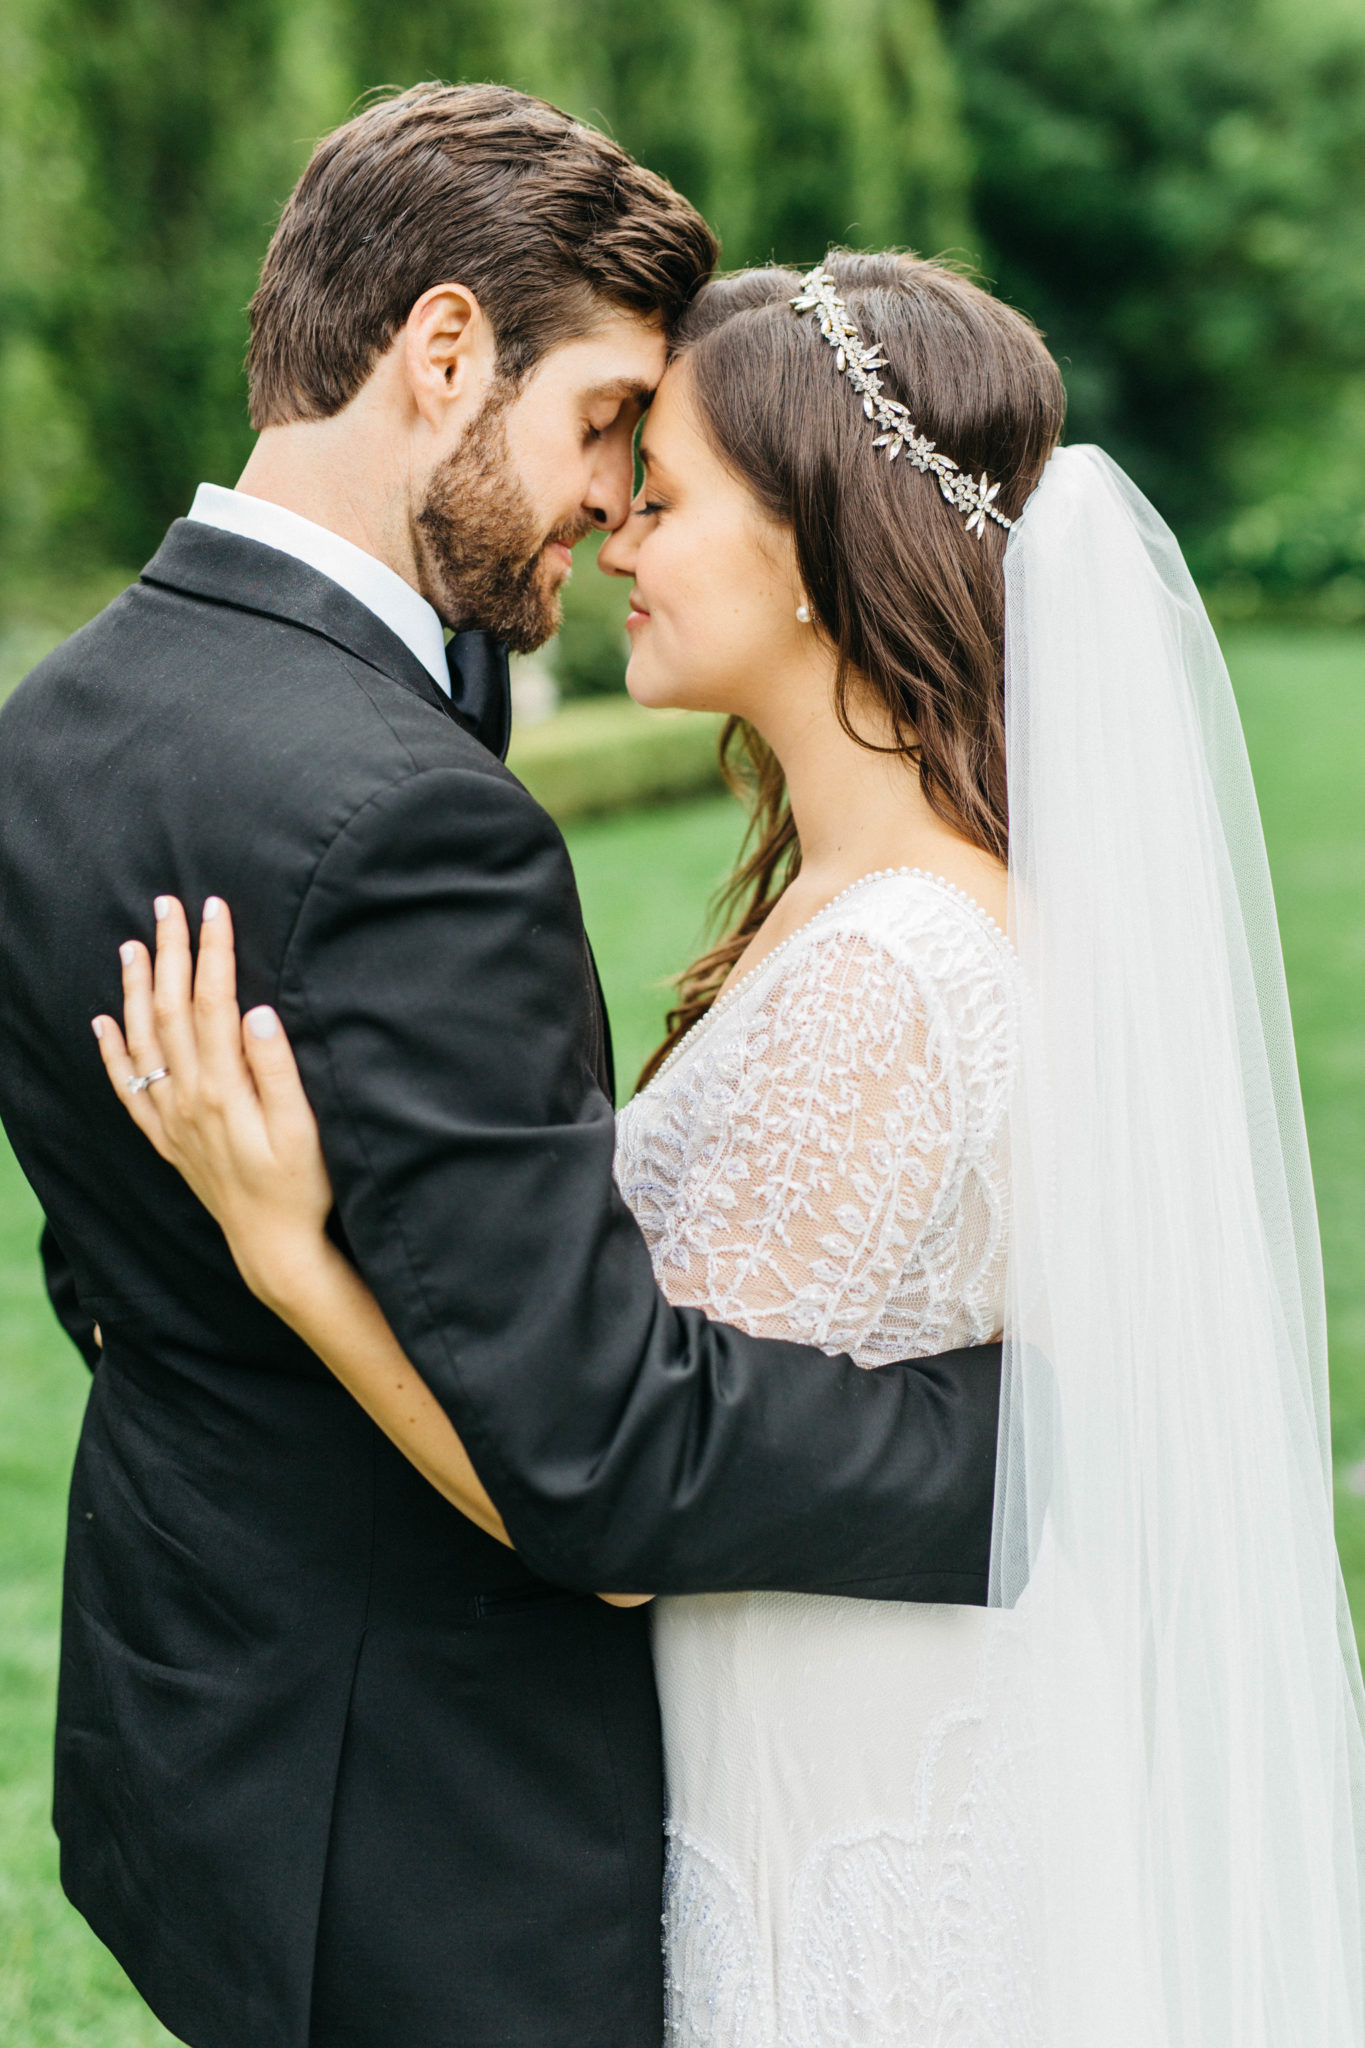 Bride and groom at Graydon Hall Manor